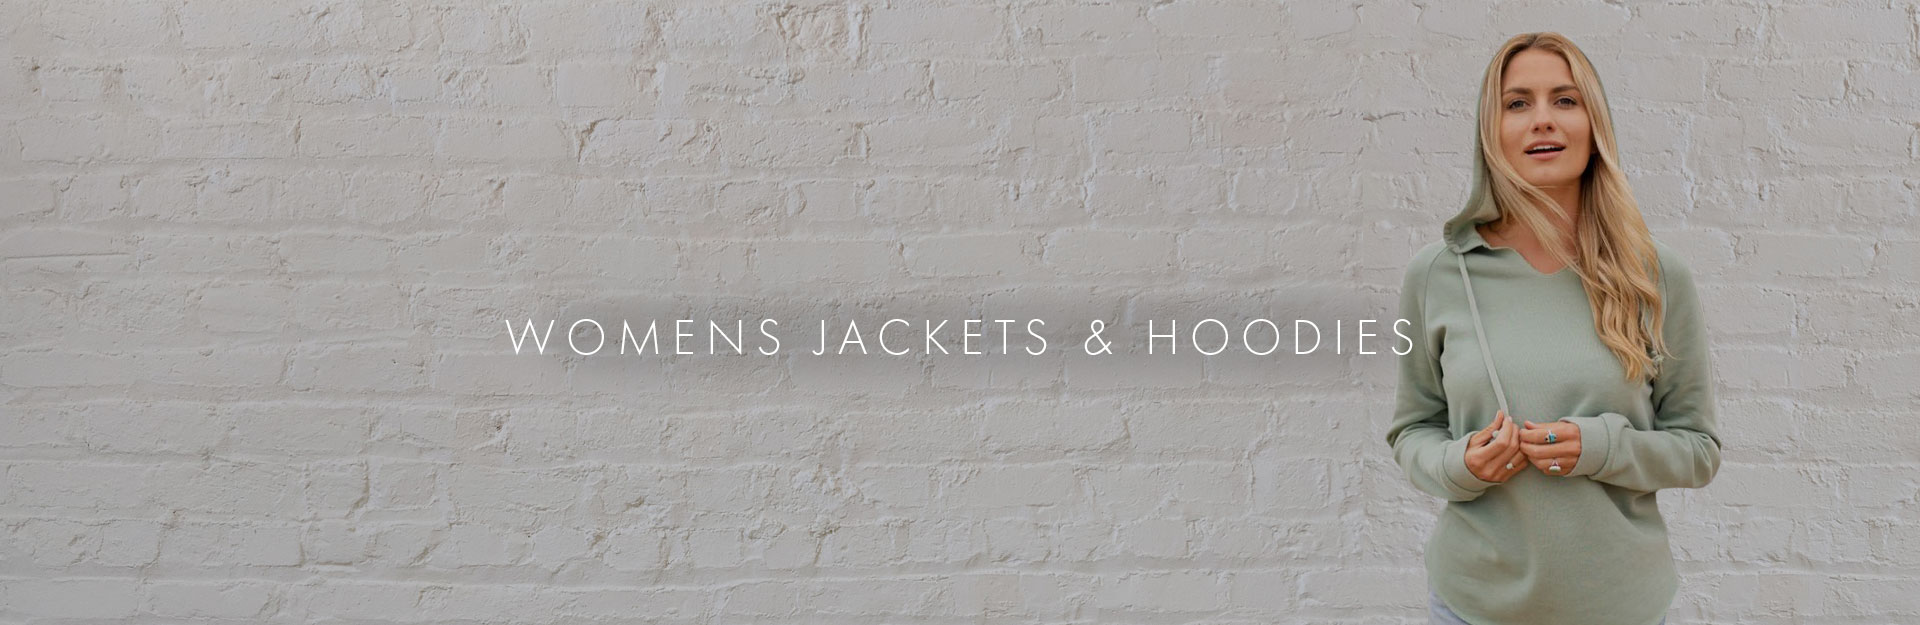 jacketshoodies.jpg